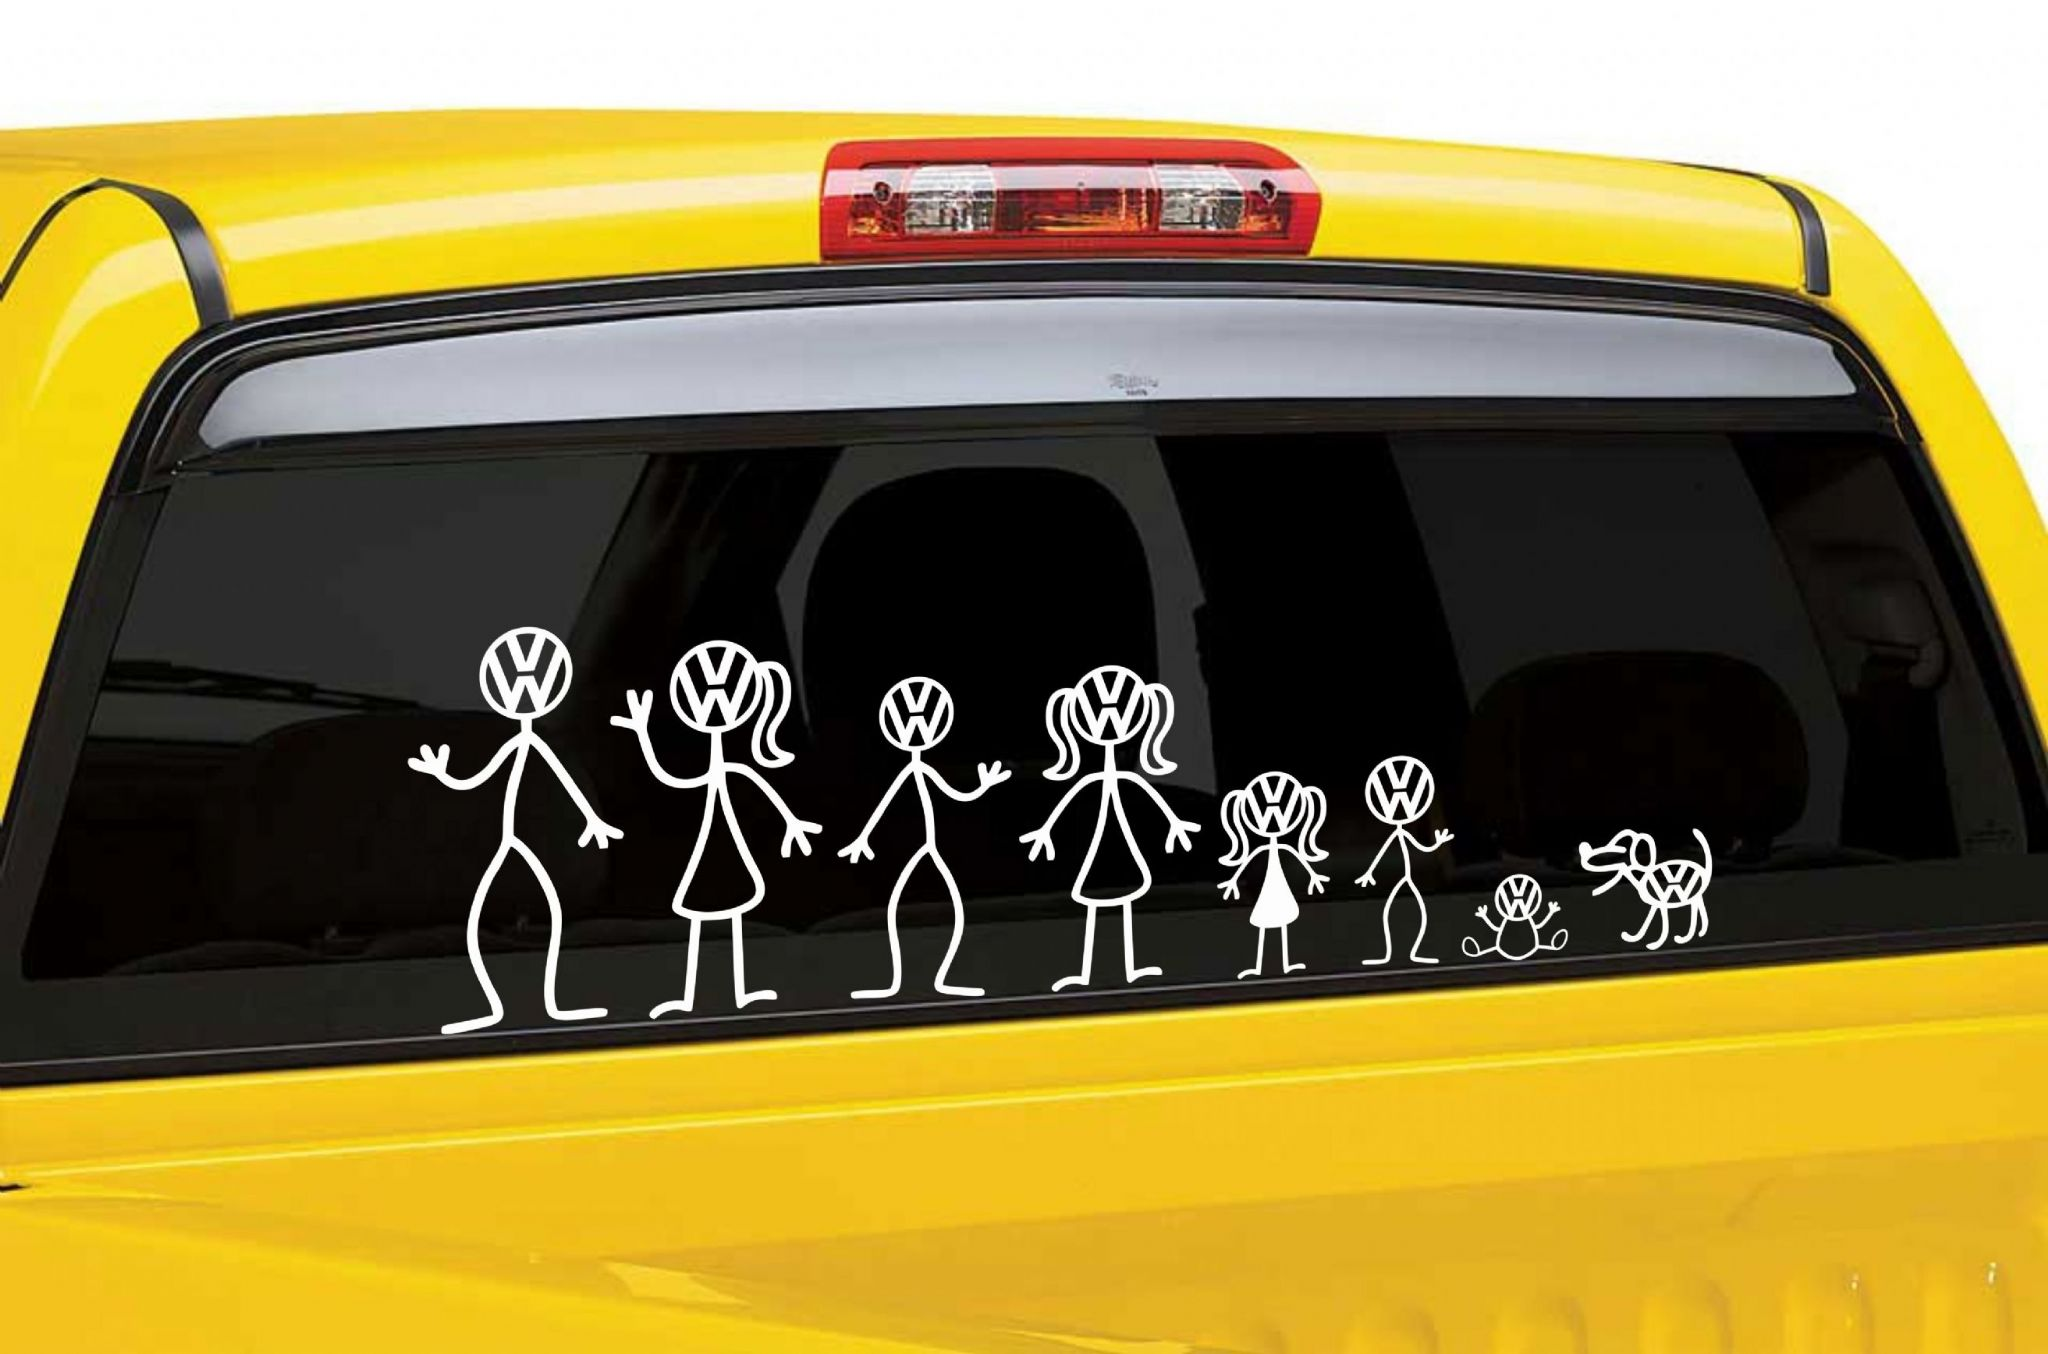 Vw stick man sticker decal selection build your own family 5053 p jpg